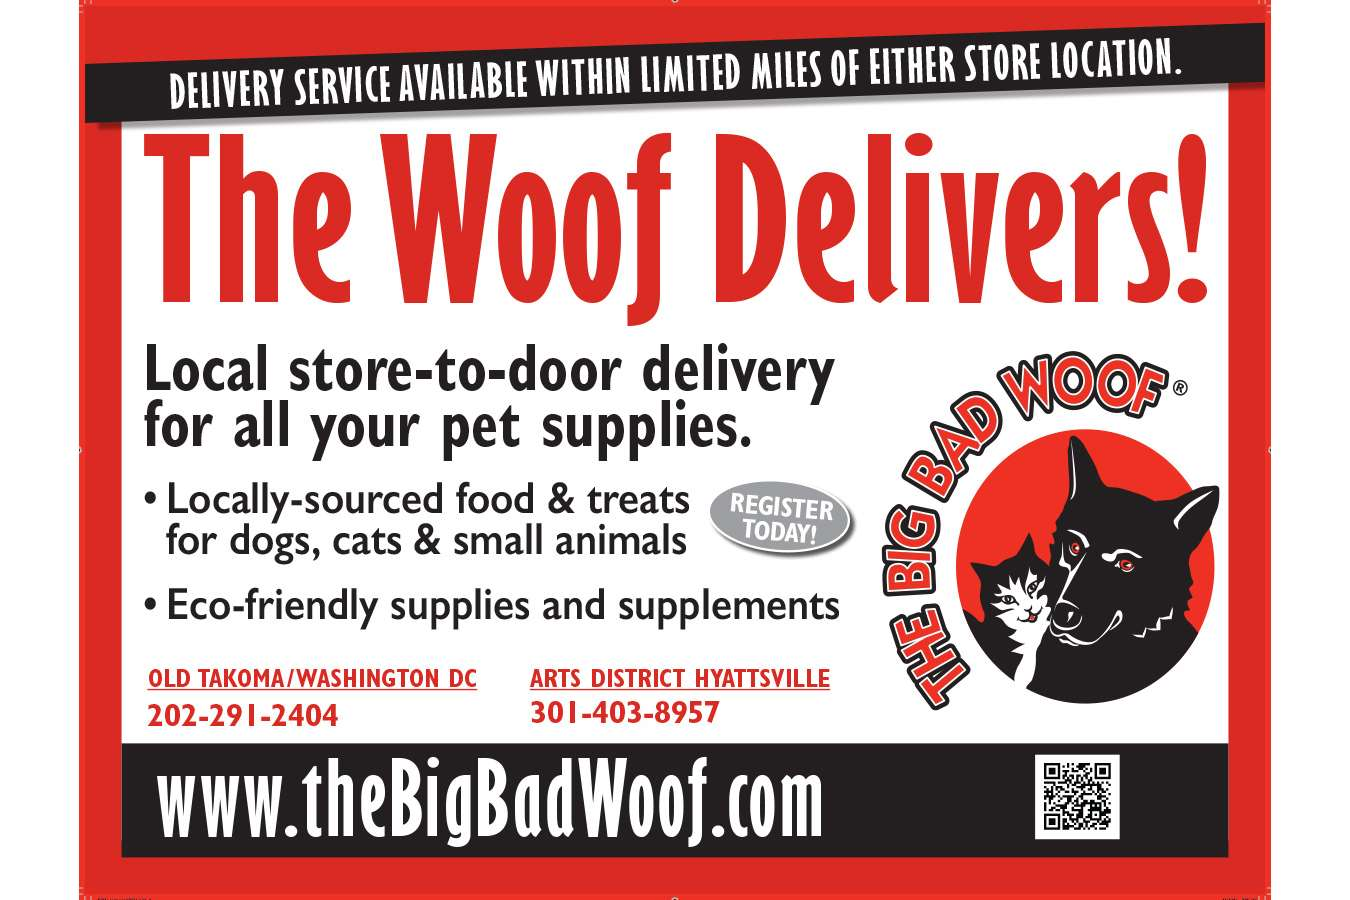 BBWoof : Magnets for Big Bad Woof Delivery Fleet